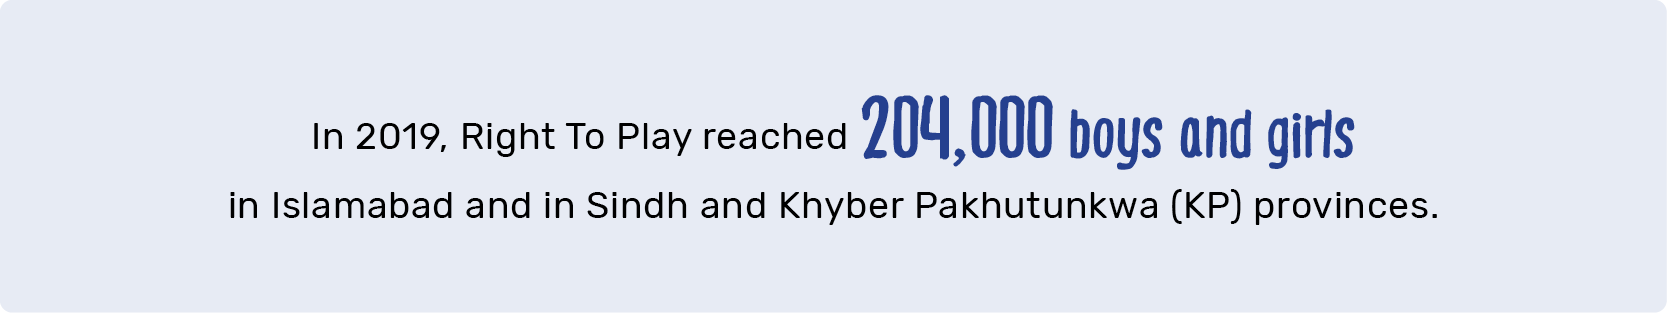 Pakistan - Country Pages - Reach Stat.png